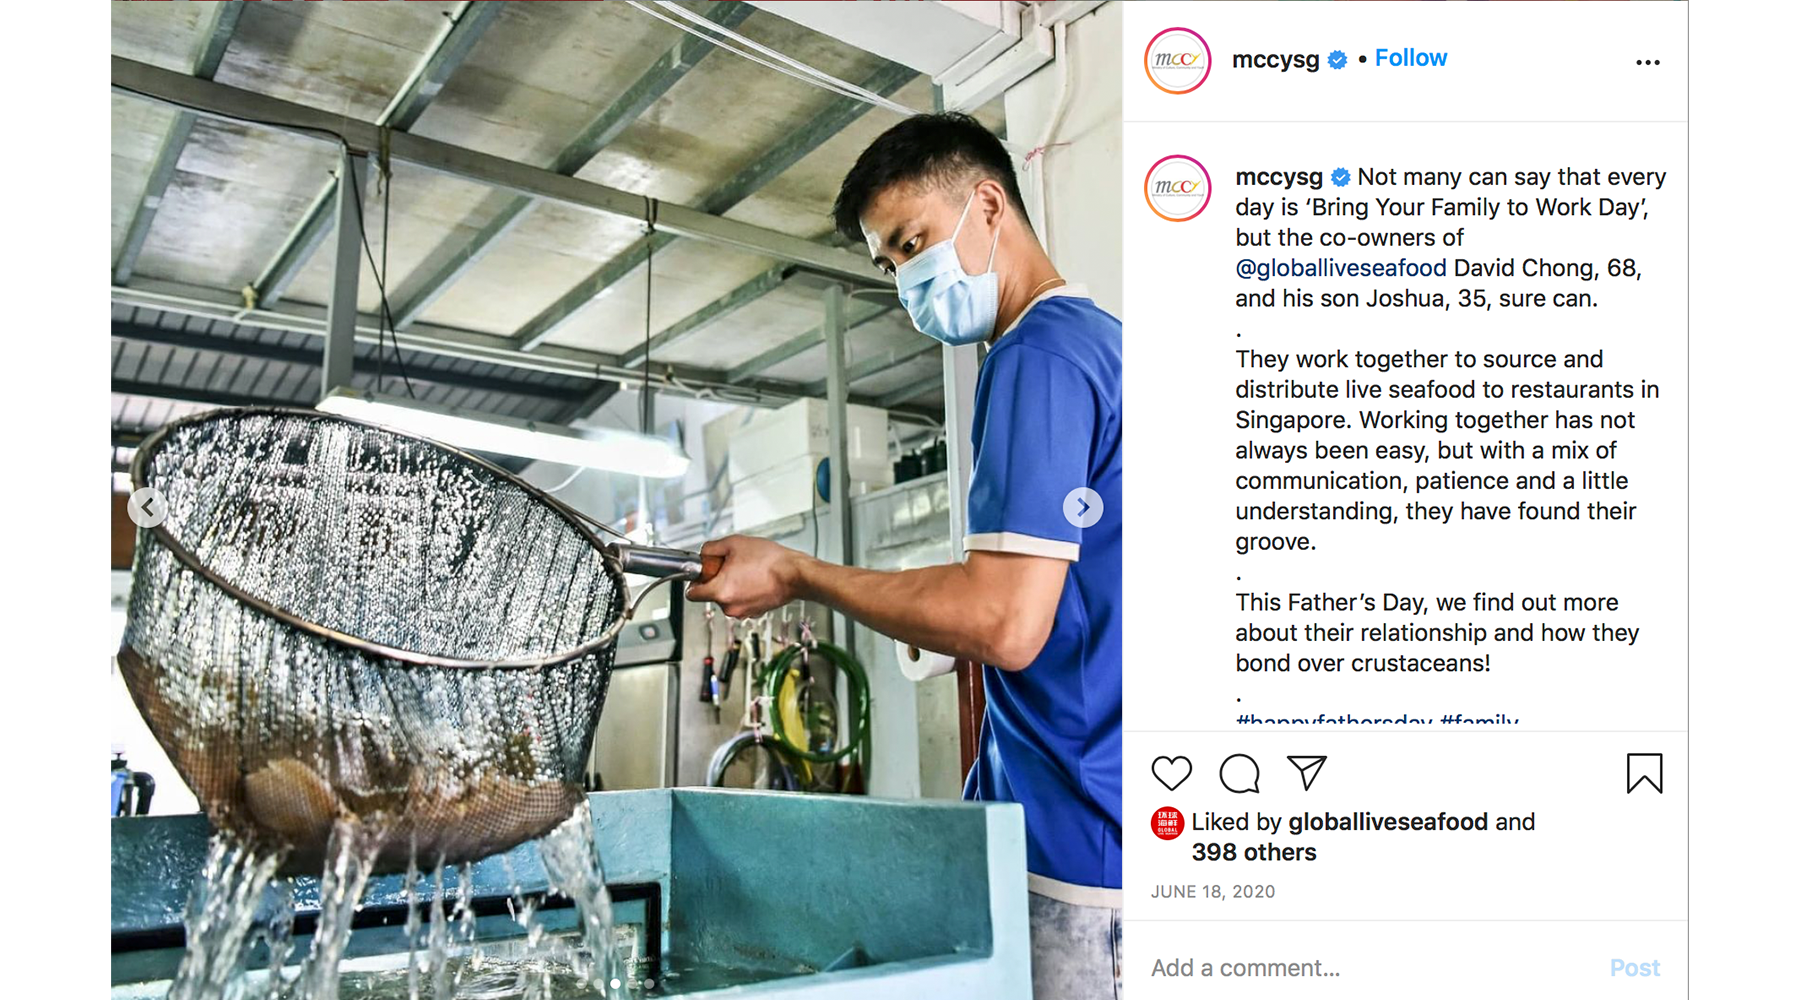 Global Live Seafood featured on MCCY's Instagram